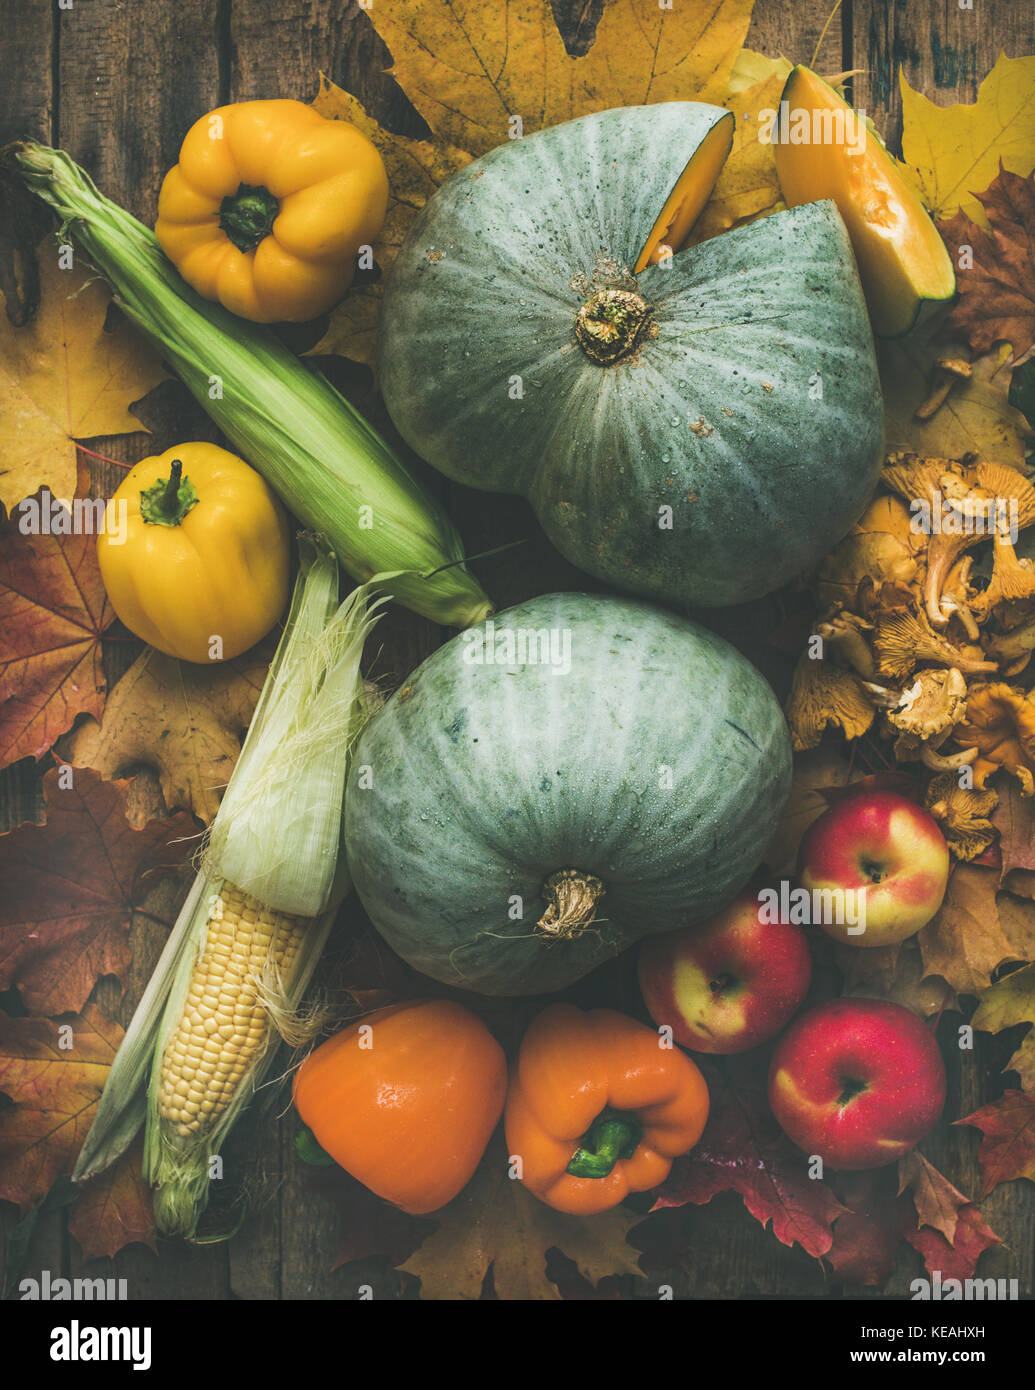 Fall colorful vegetables assortment over wooden table background - Stock Image